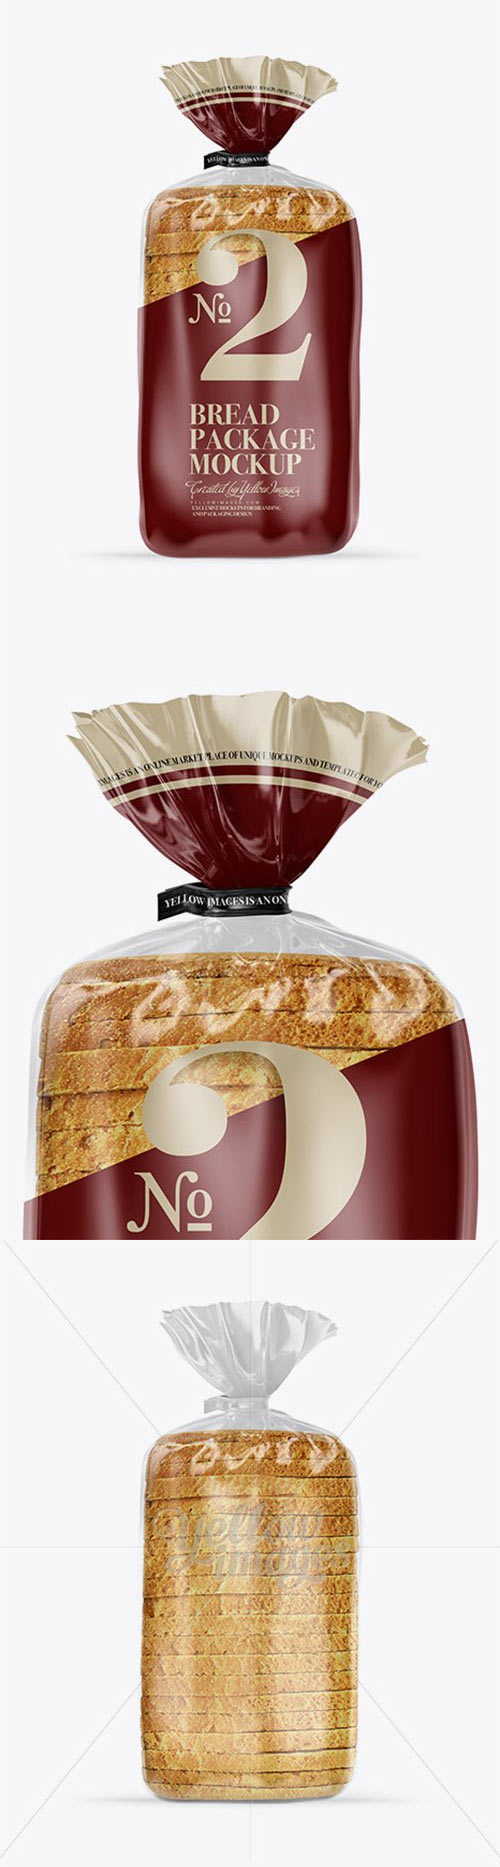 Download Pin By Sina Savad On Free Mockup Bread Packaging Psd Template Free Mockup Free Psd